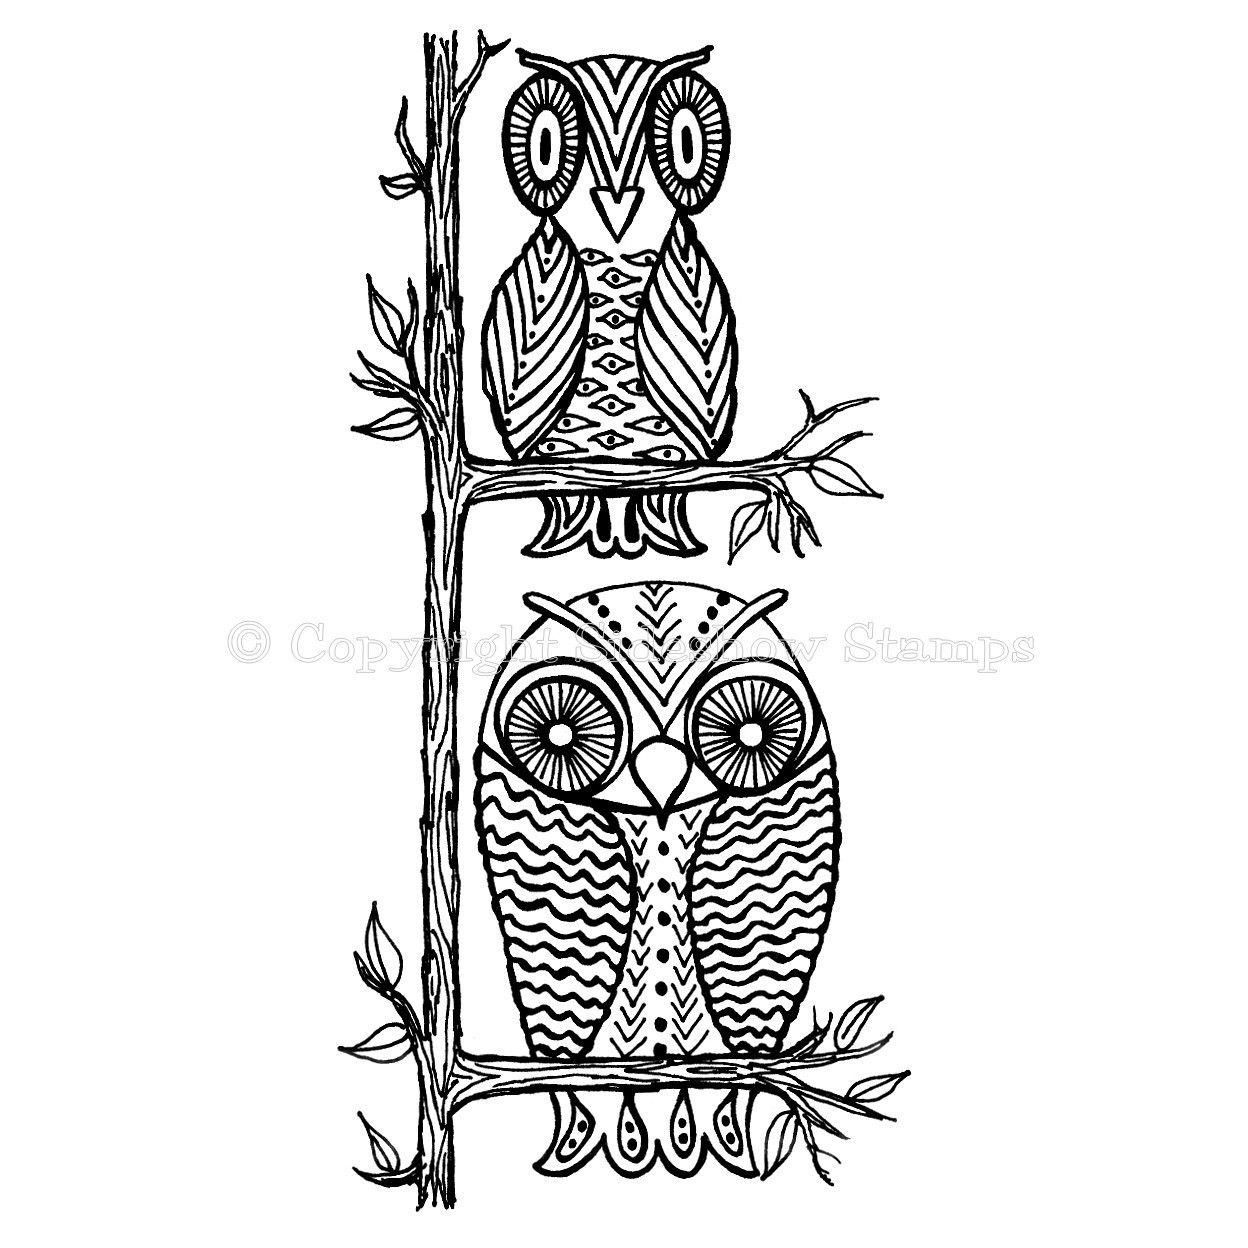 Unmounted Rubber Stamp Owl Border 2 Owls Sitting In A Tree 575